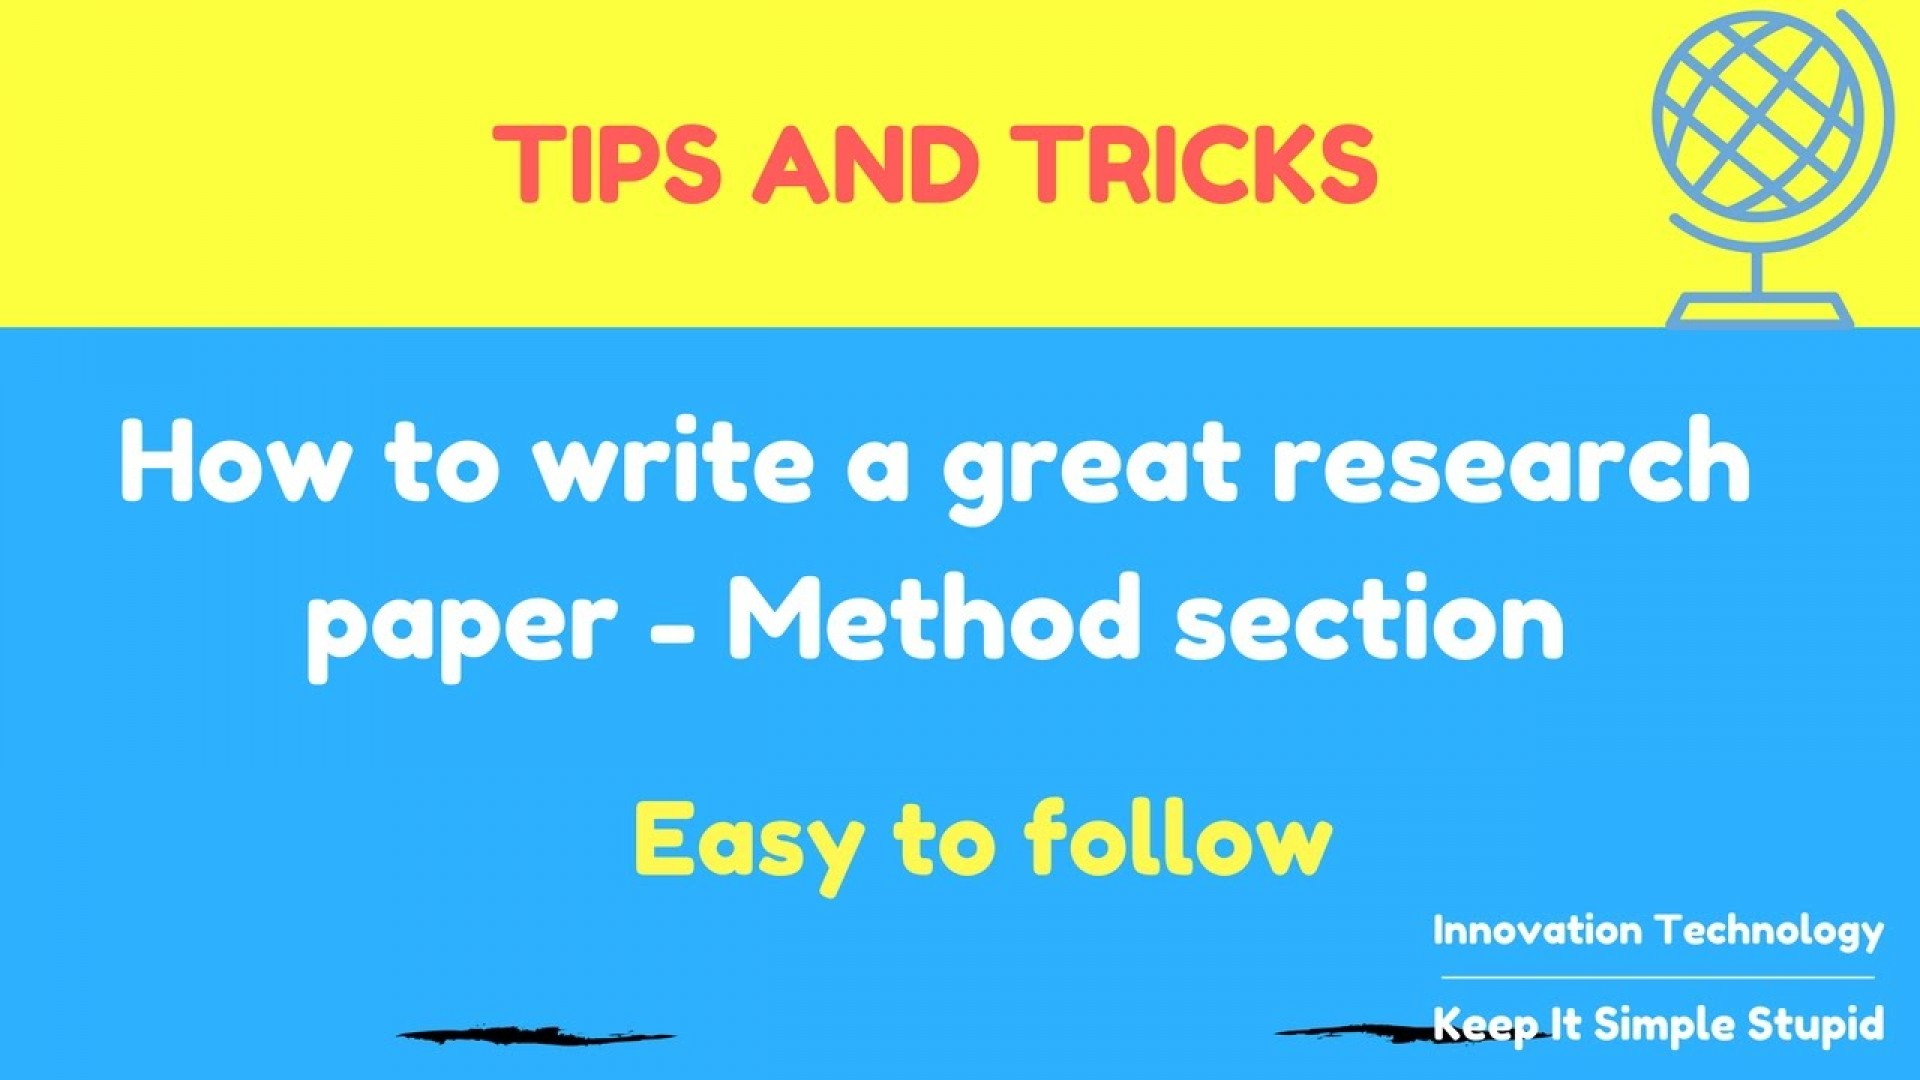 007 How To Write Methods Section Of Research Paper Fantastic A The Results Qualitative Methodology Psychology 1920